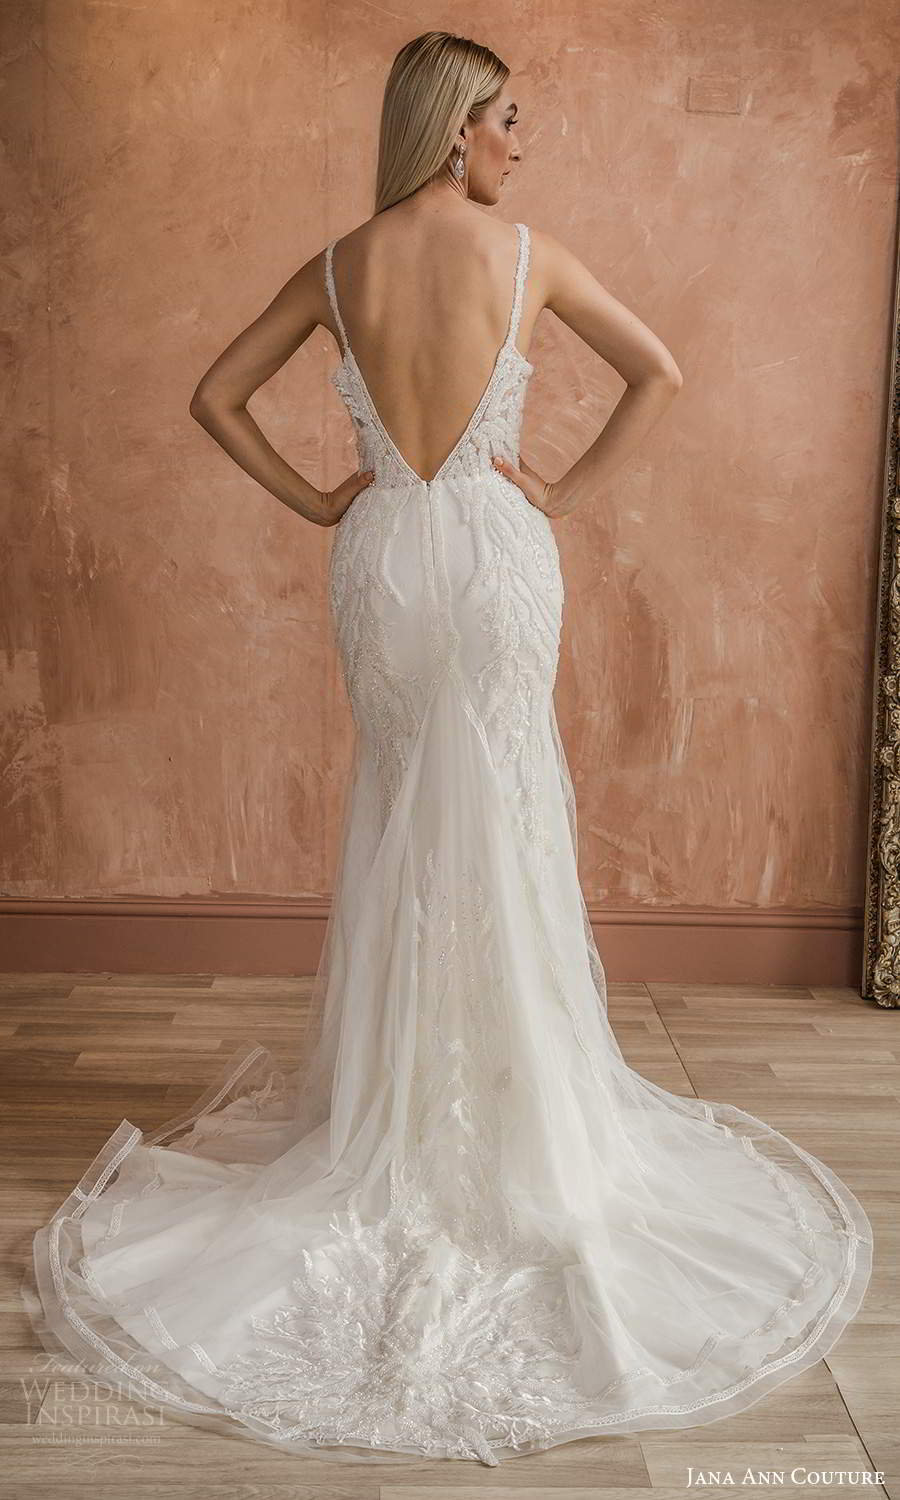 jana ann couture 2021 bridal sleeveless straps v neckline fully embellished sheath wedding dress chapel train (23) bv